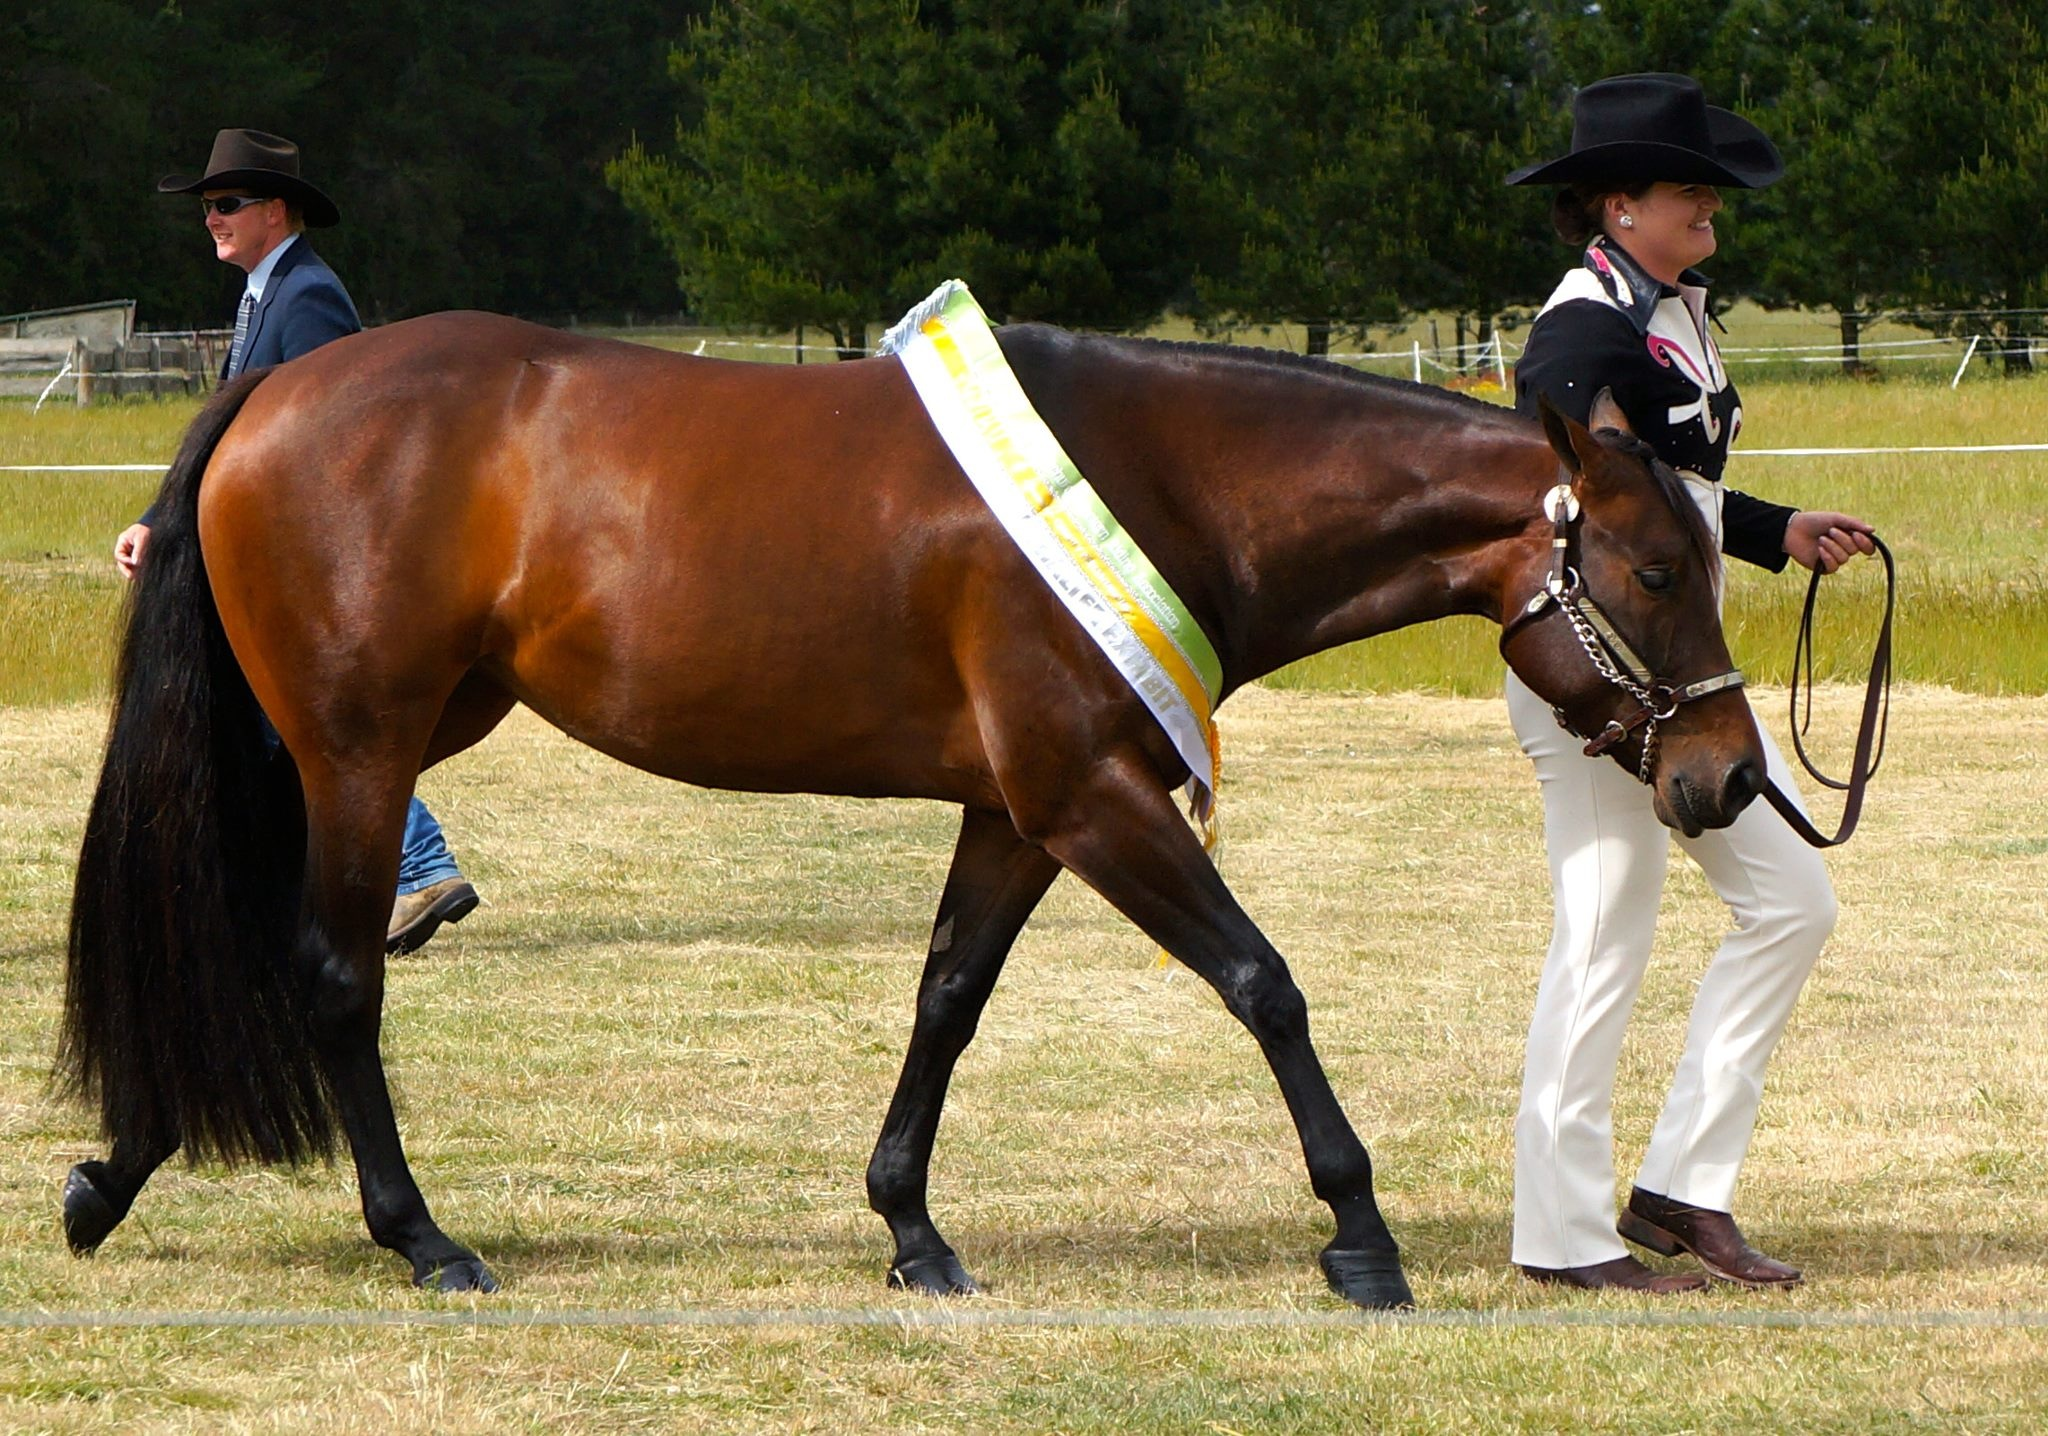 Georgia and GH Passin Class, Supreme Halter Exhibit, 2012 Christchurch Show